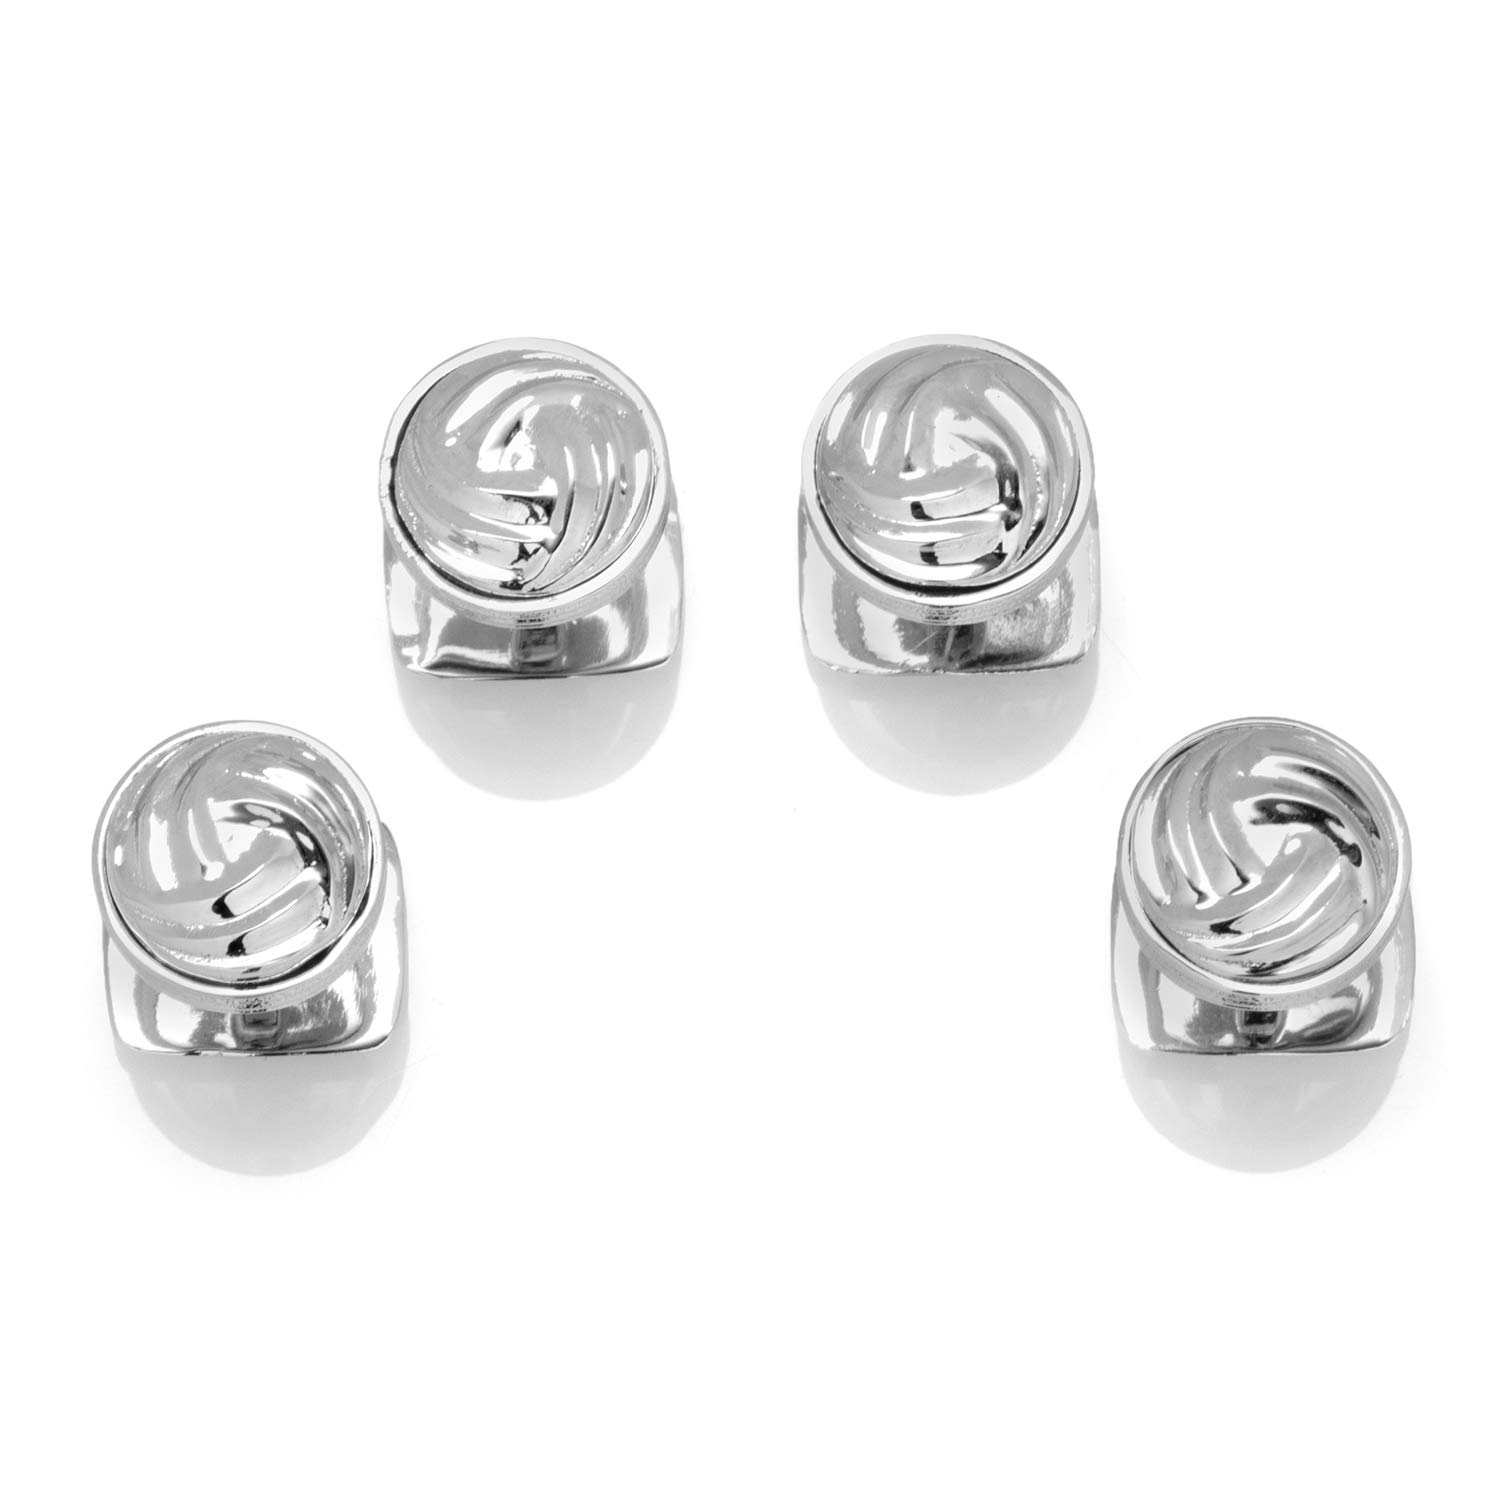 Ox and Bull Trading Co. Modern Knot Sterling Silver Studs